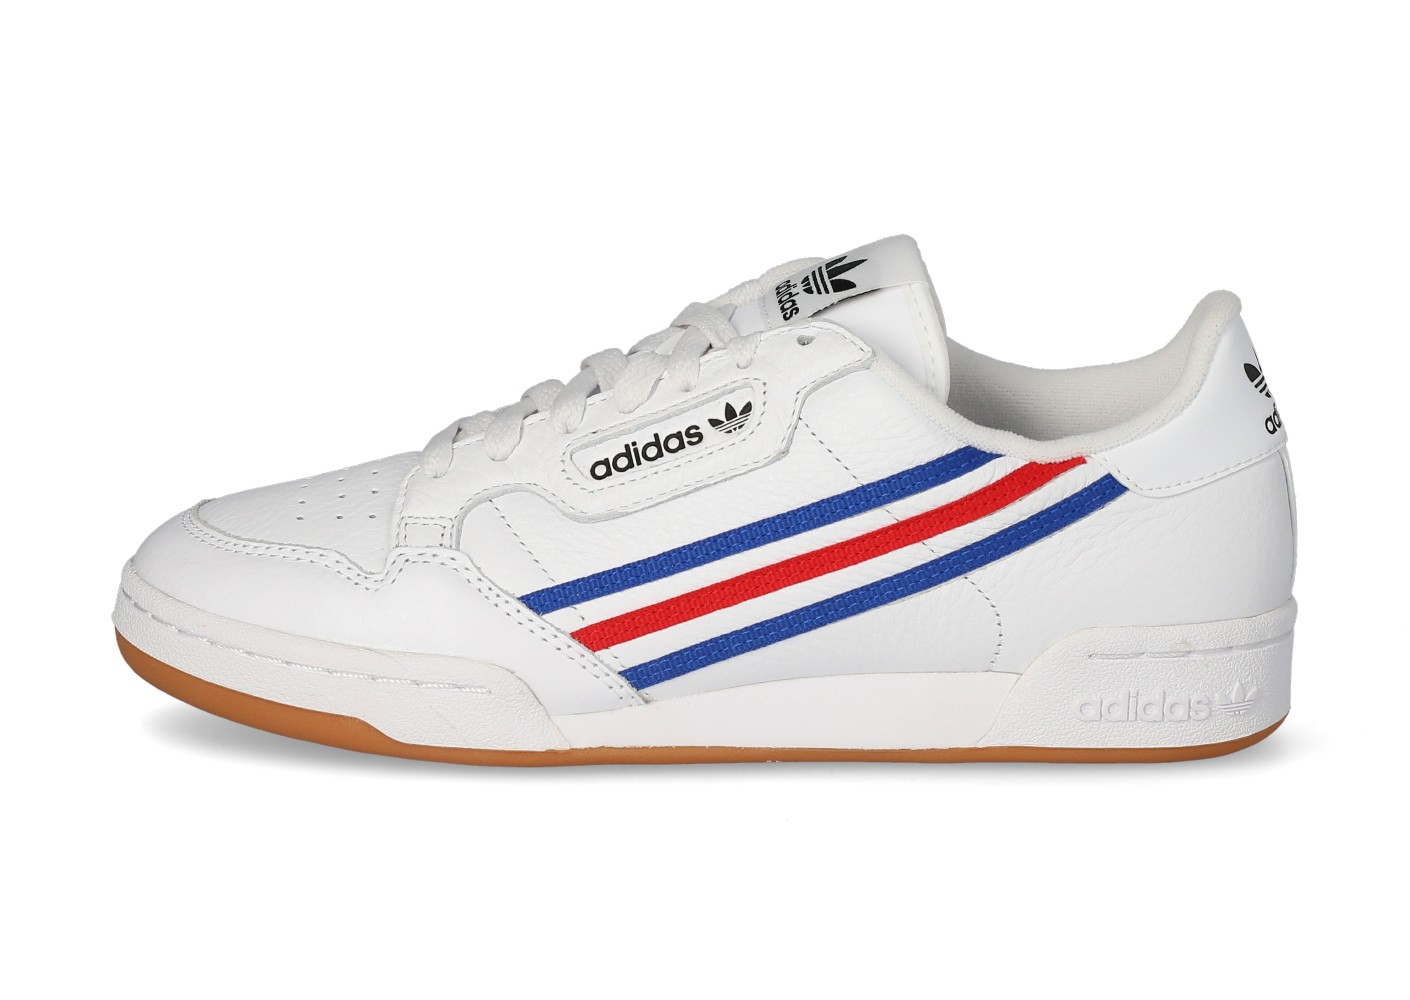 adidas Continental 80 tricolore Homme blanche - Chaussures Baskets ...